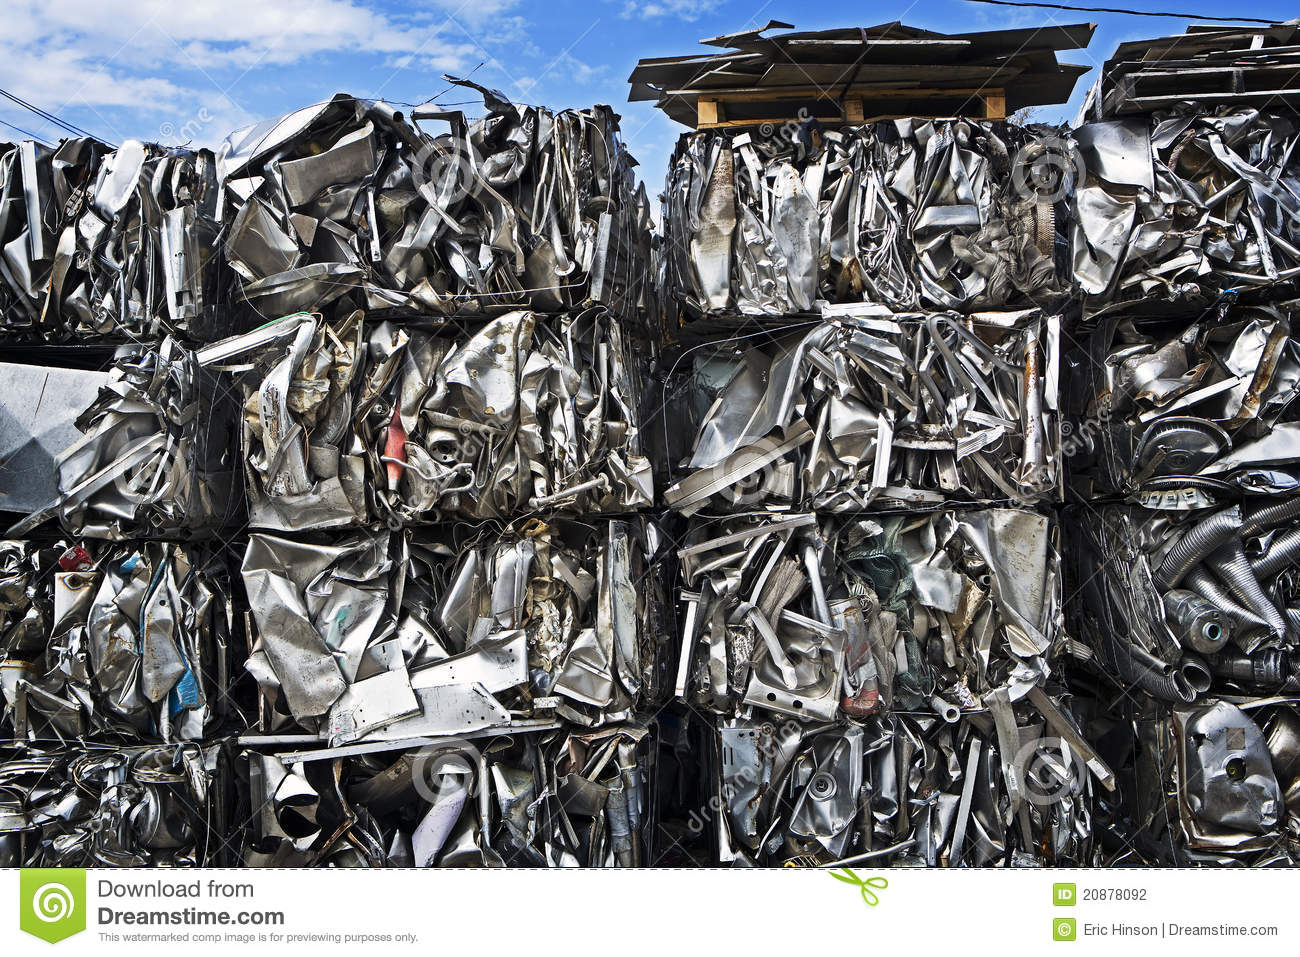 Leadsheets together with mcnicholsscrap likewise Gallery moreover Scrap Metal Yard Near Elizabeth additionally Royalty Free Stock Photo Heavy Duty Metal Cable Image20878065. on aluminum wire scrap prices